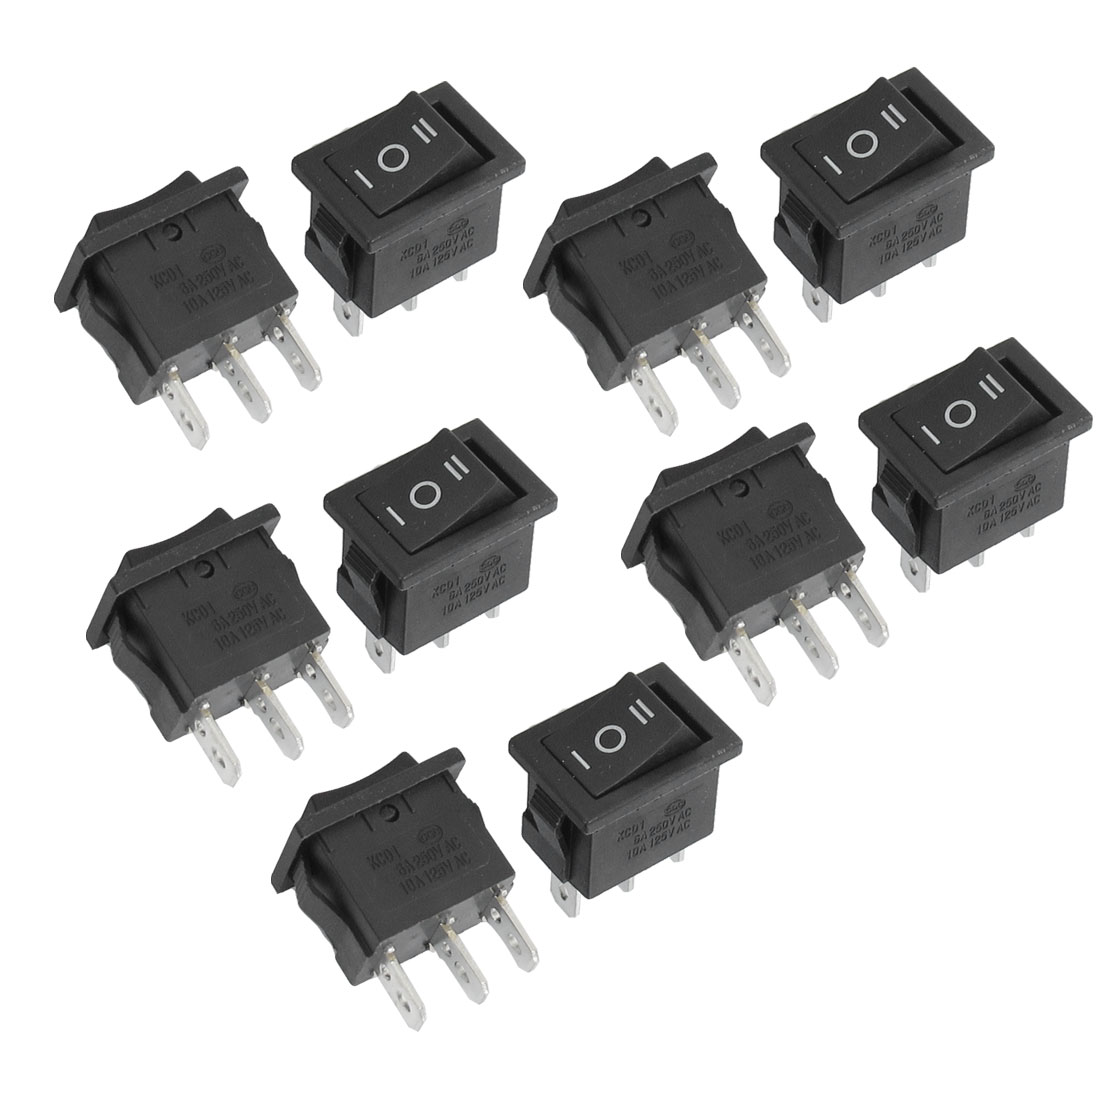 10 Pcs ON-OFF-ON SPST 3 Pin Snap In Rocker Switch 6A/250V 10A/125V AC